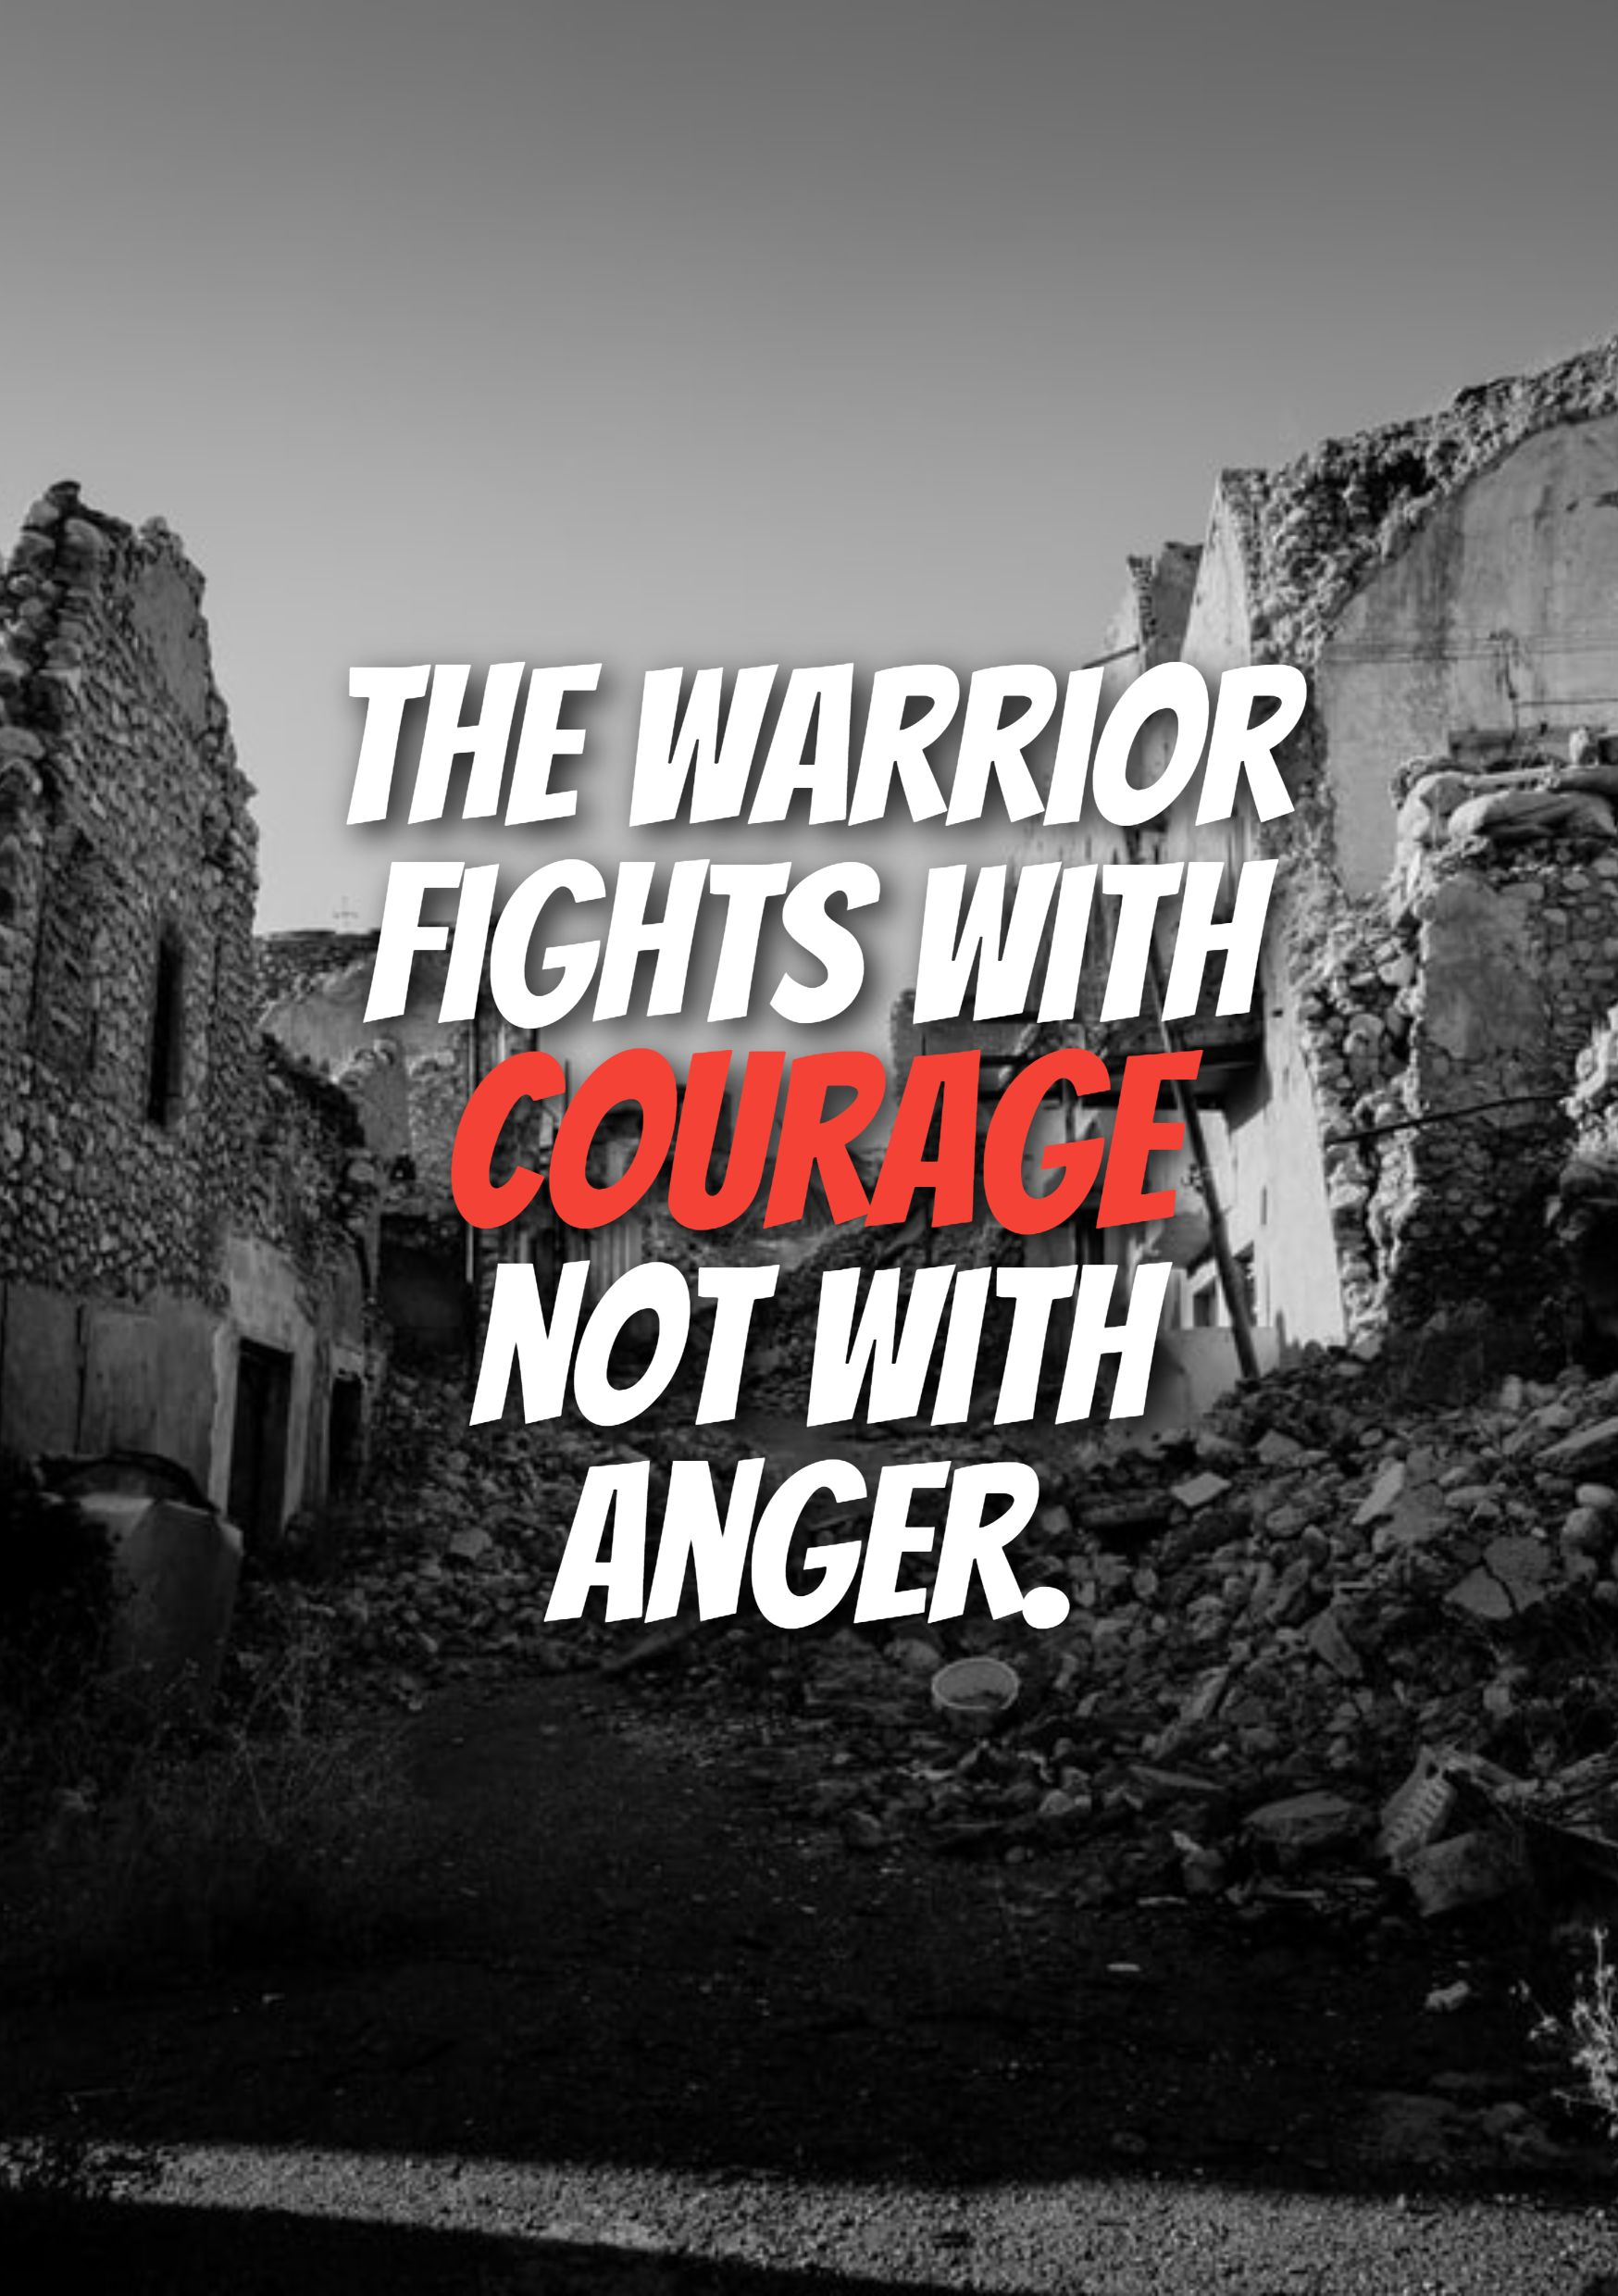 Quotes image of The warrior fights with courage not with anger.